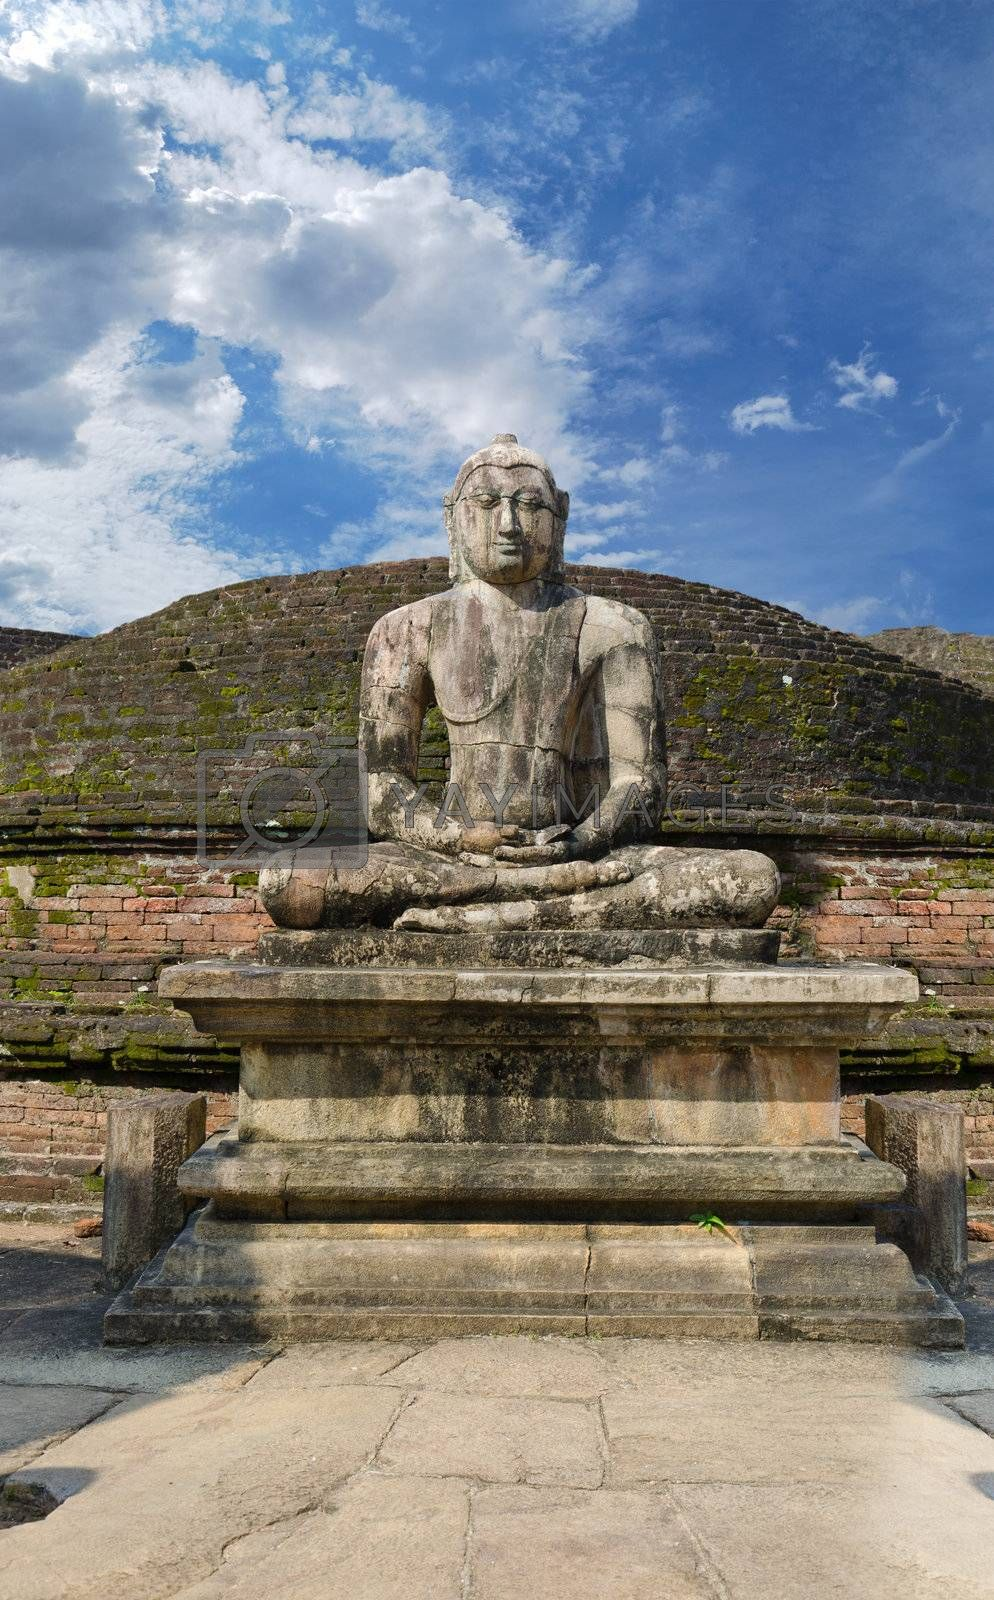 Stone Buddha image on ruins at Polonnaruwa, Sri Lanka